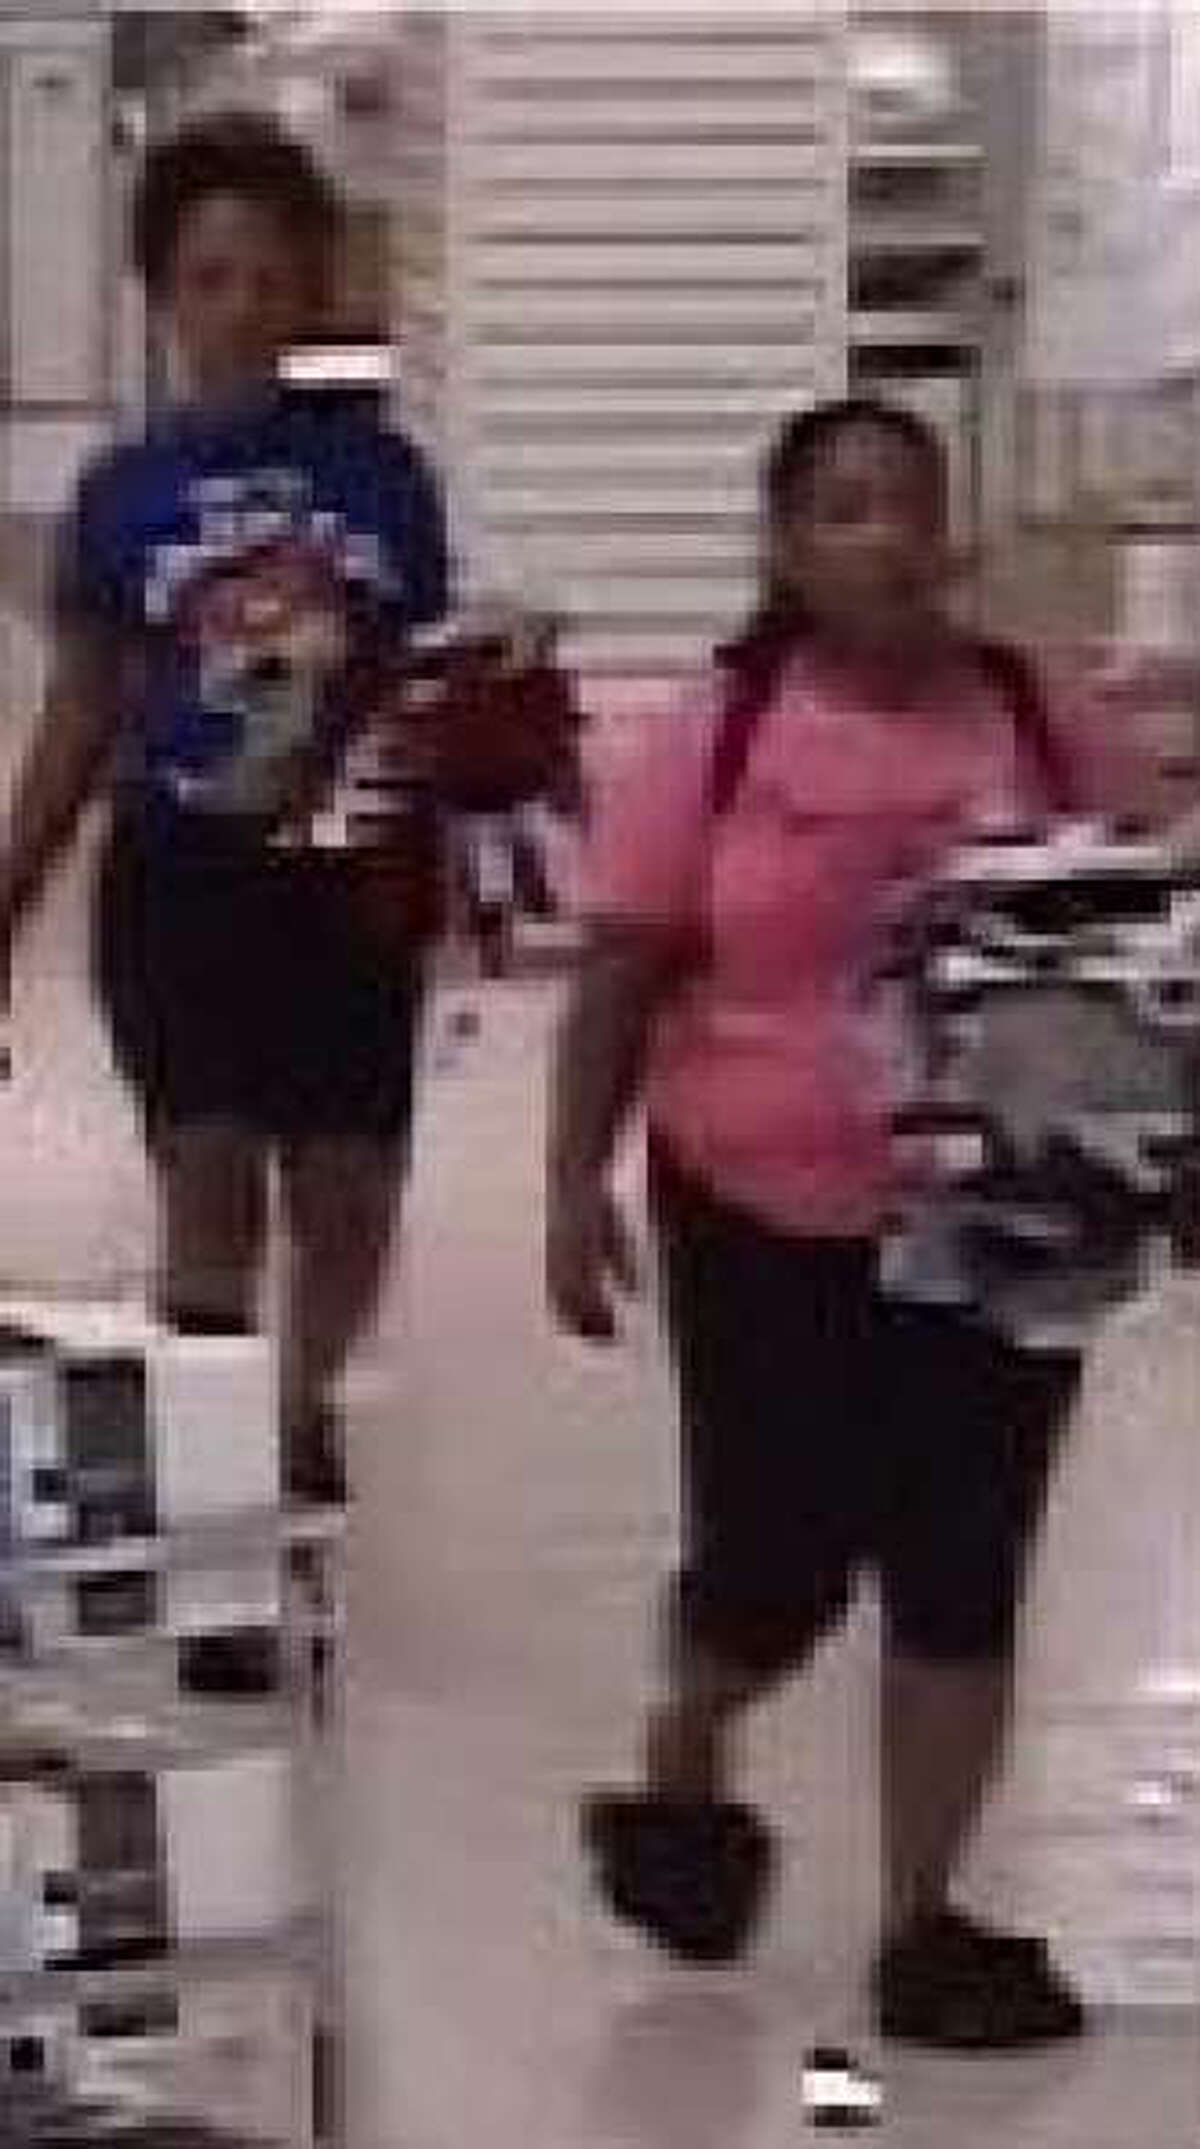 Crime Stoppers and the San Antonio police are searching for three people they accuse of stealing clothes from a department store and biting two employees who tried to stop it.